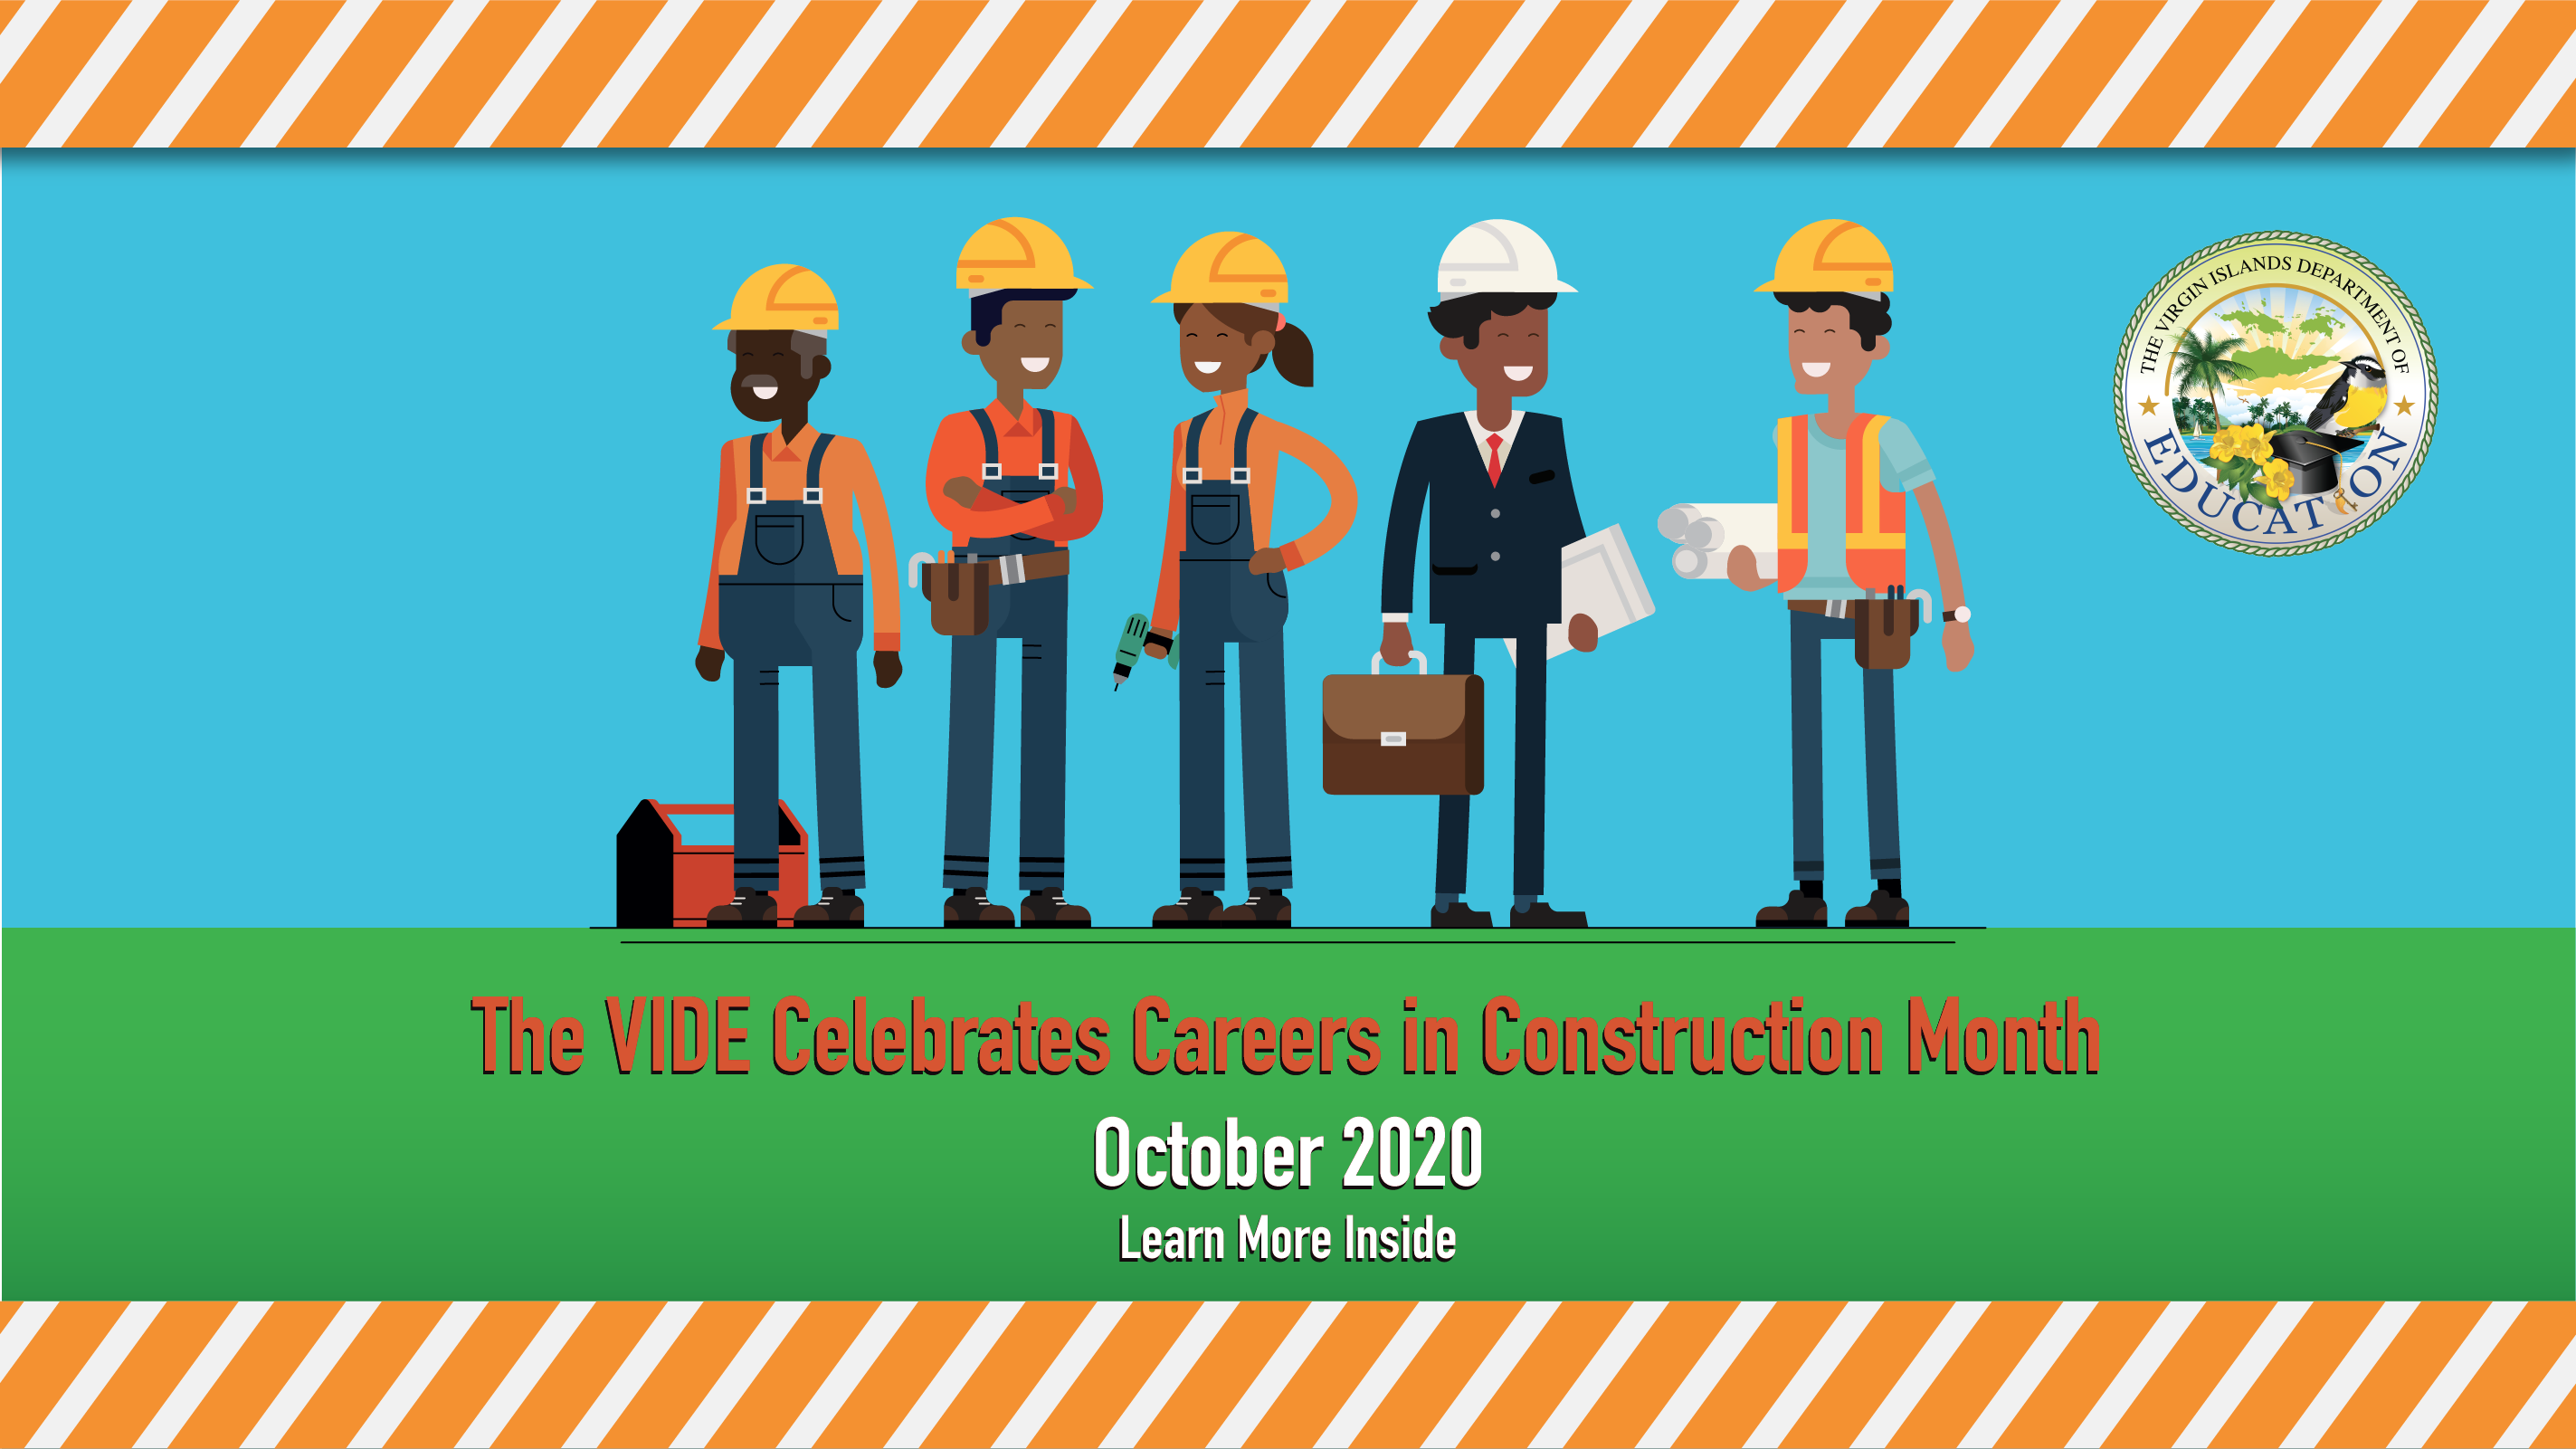 Celebrating Careers in Construction Month - October 2020